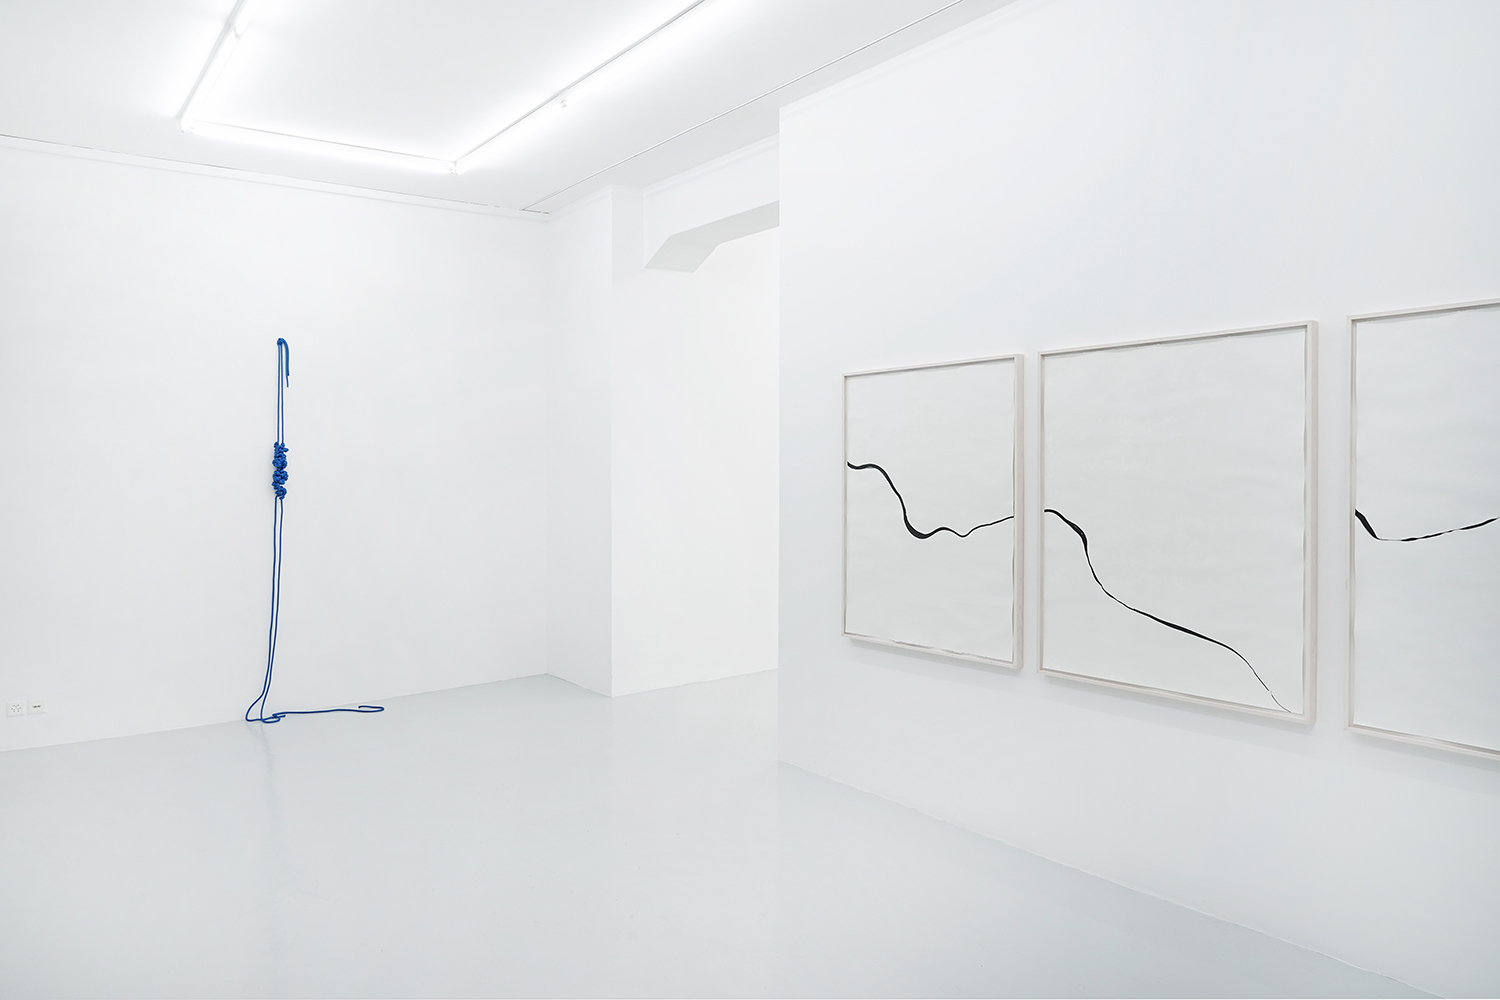 Trap/Cepo, 2018, rope, 246 x 76 x 33cm; Refractions/Laloran, 2018, ink on paper, 3 frames, each 125 x 99cm